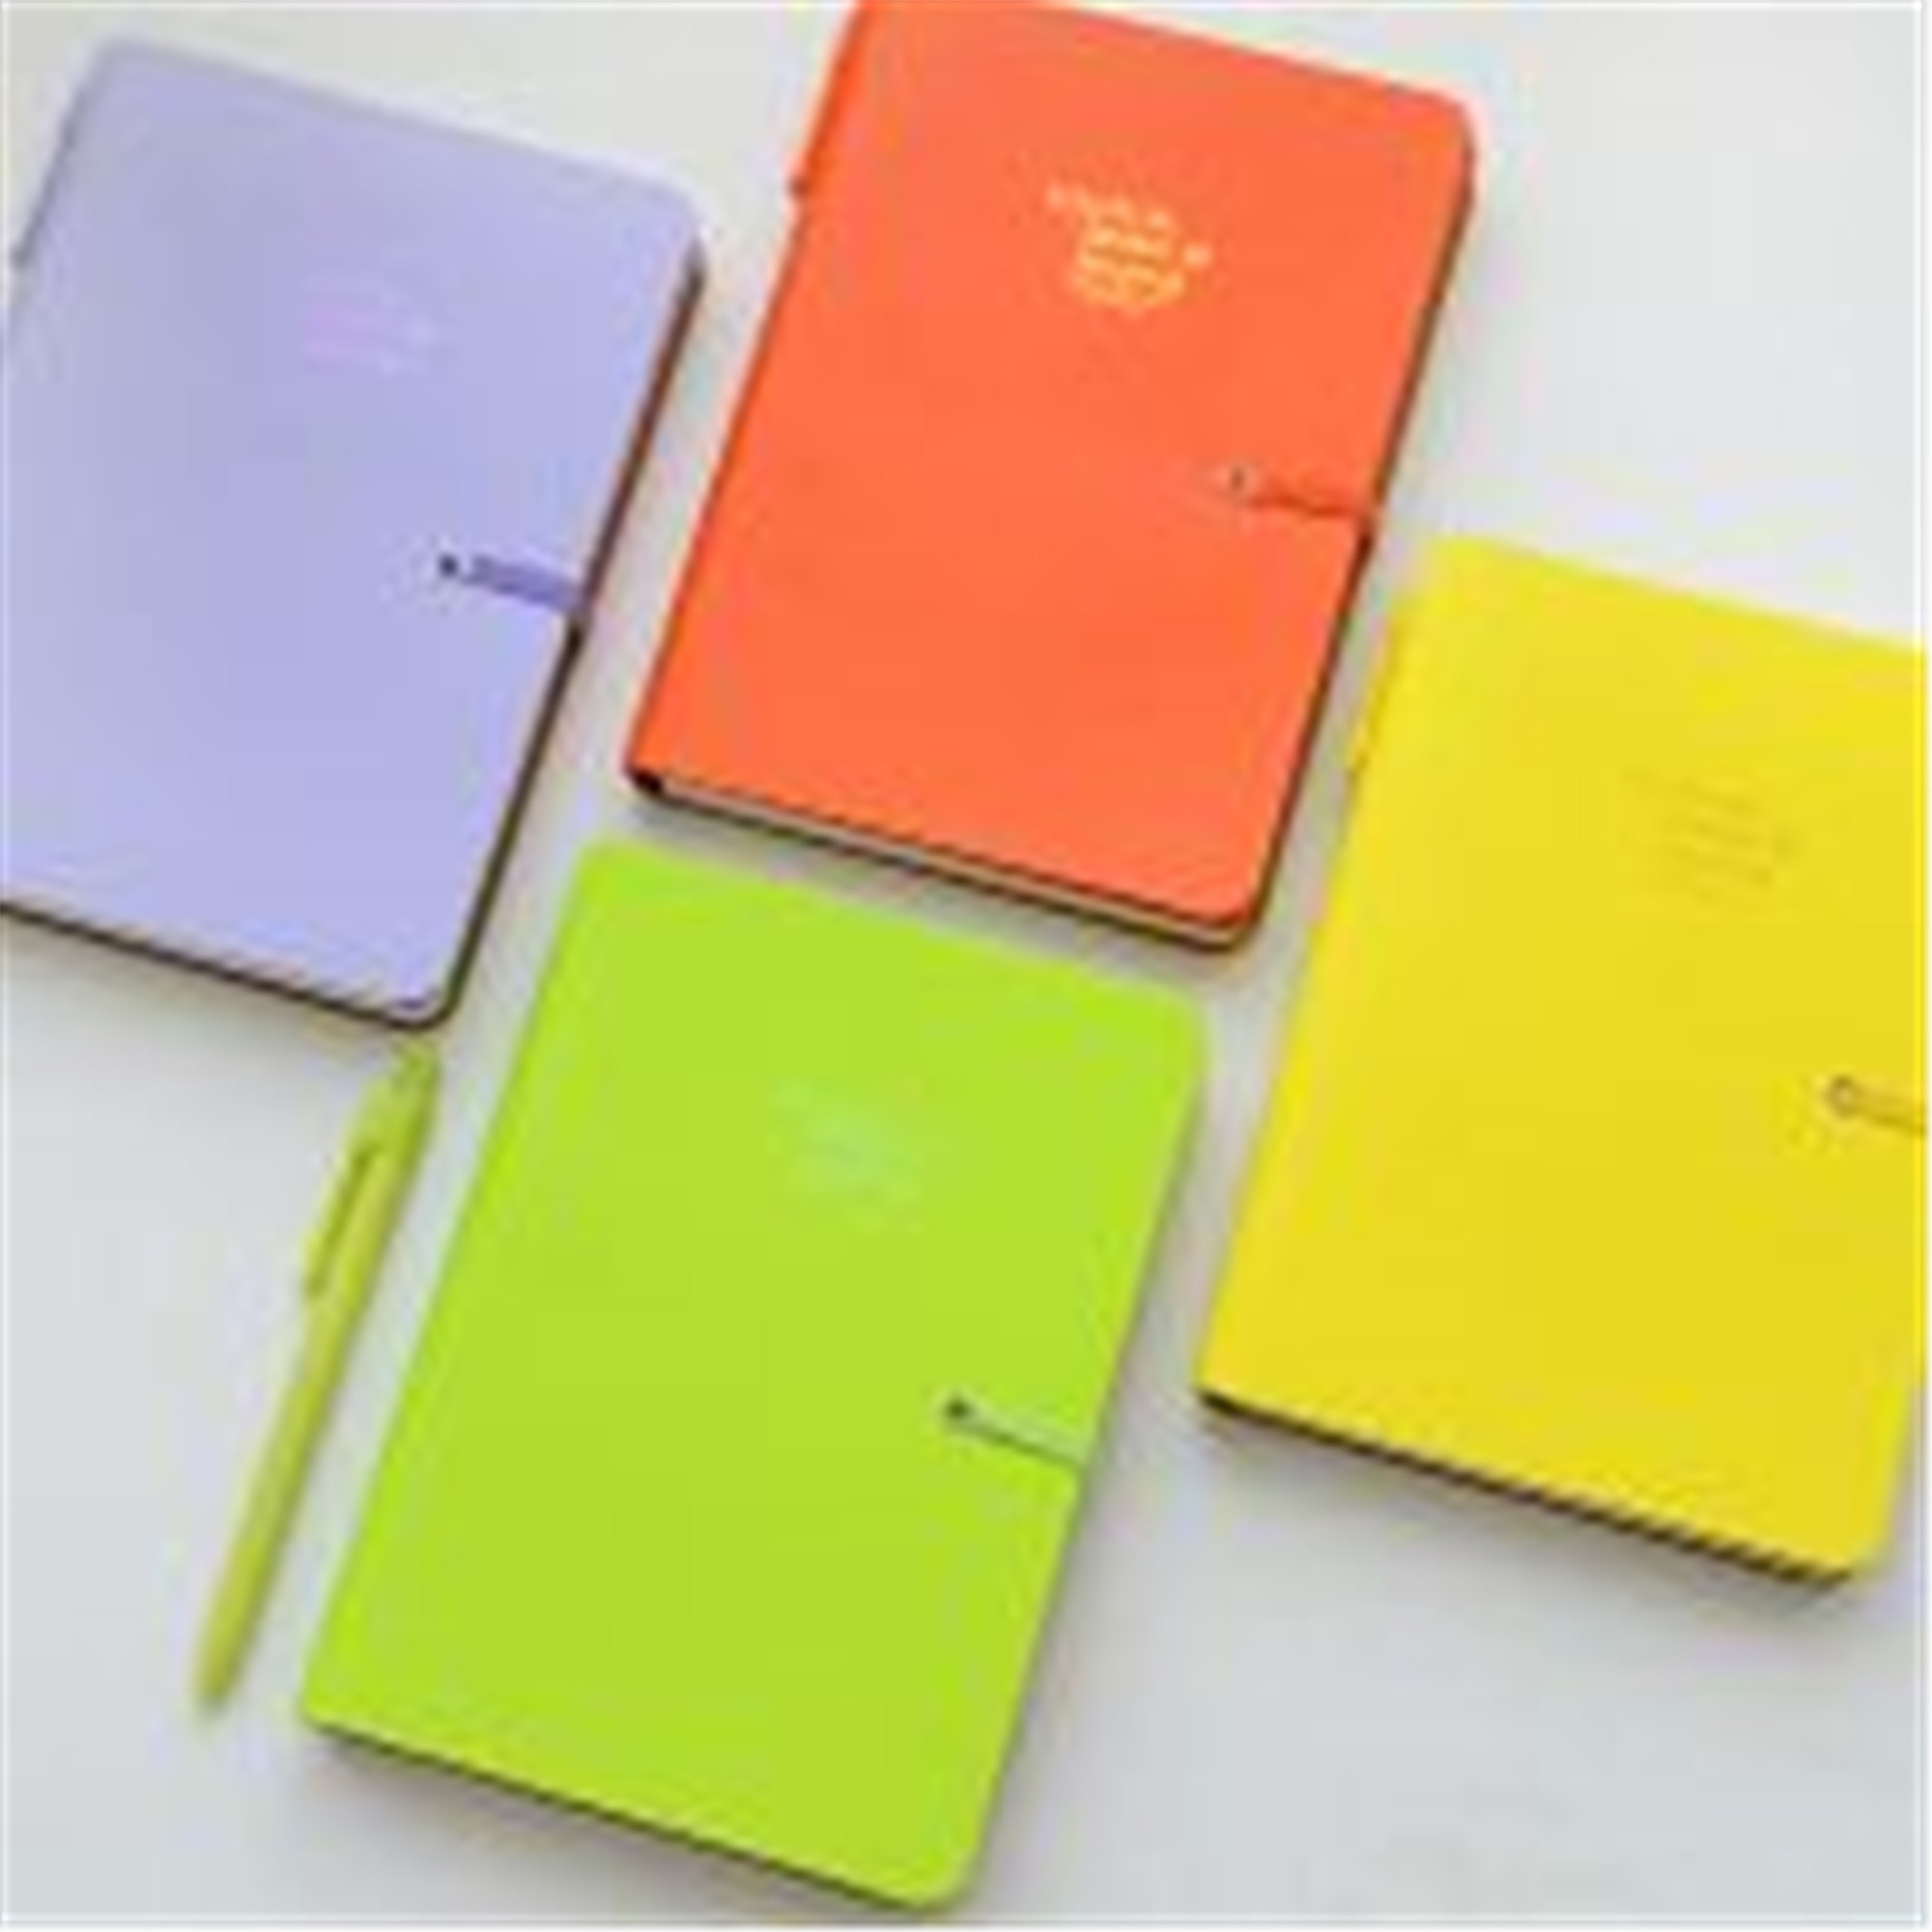 Gathe Factory price for paper notebook with fashionable design Featured Image